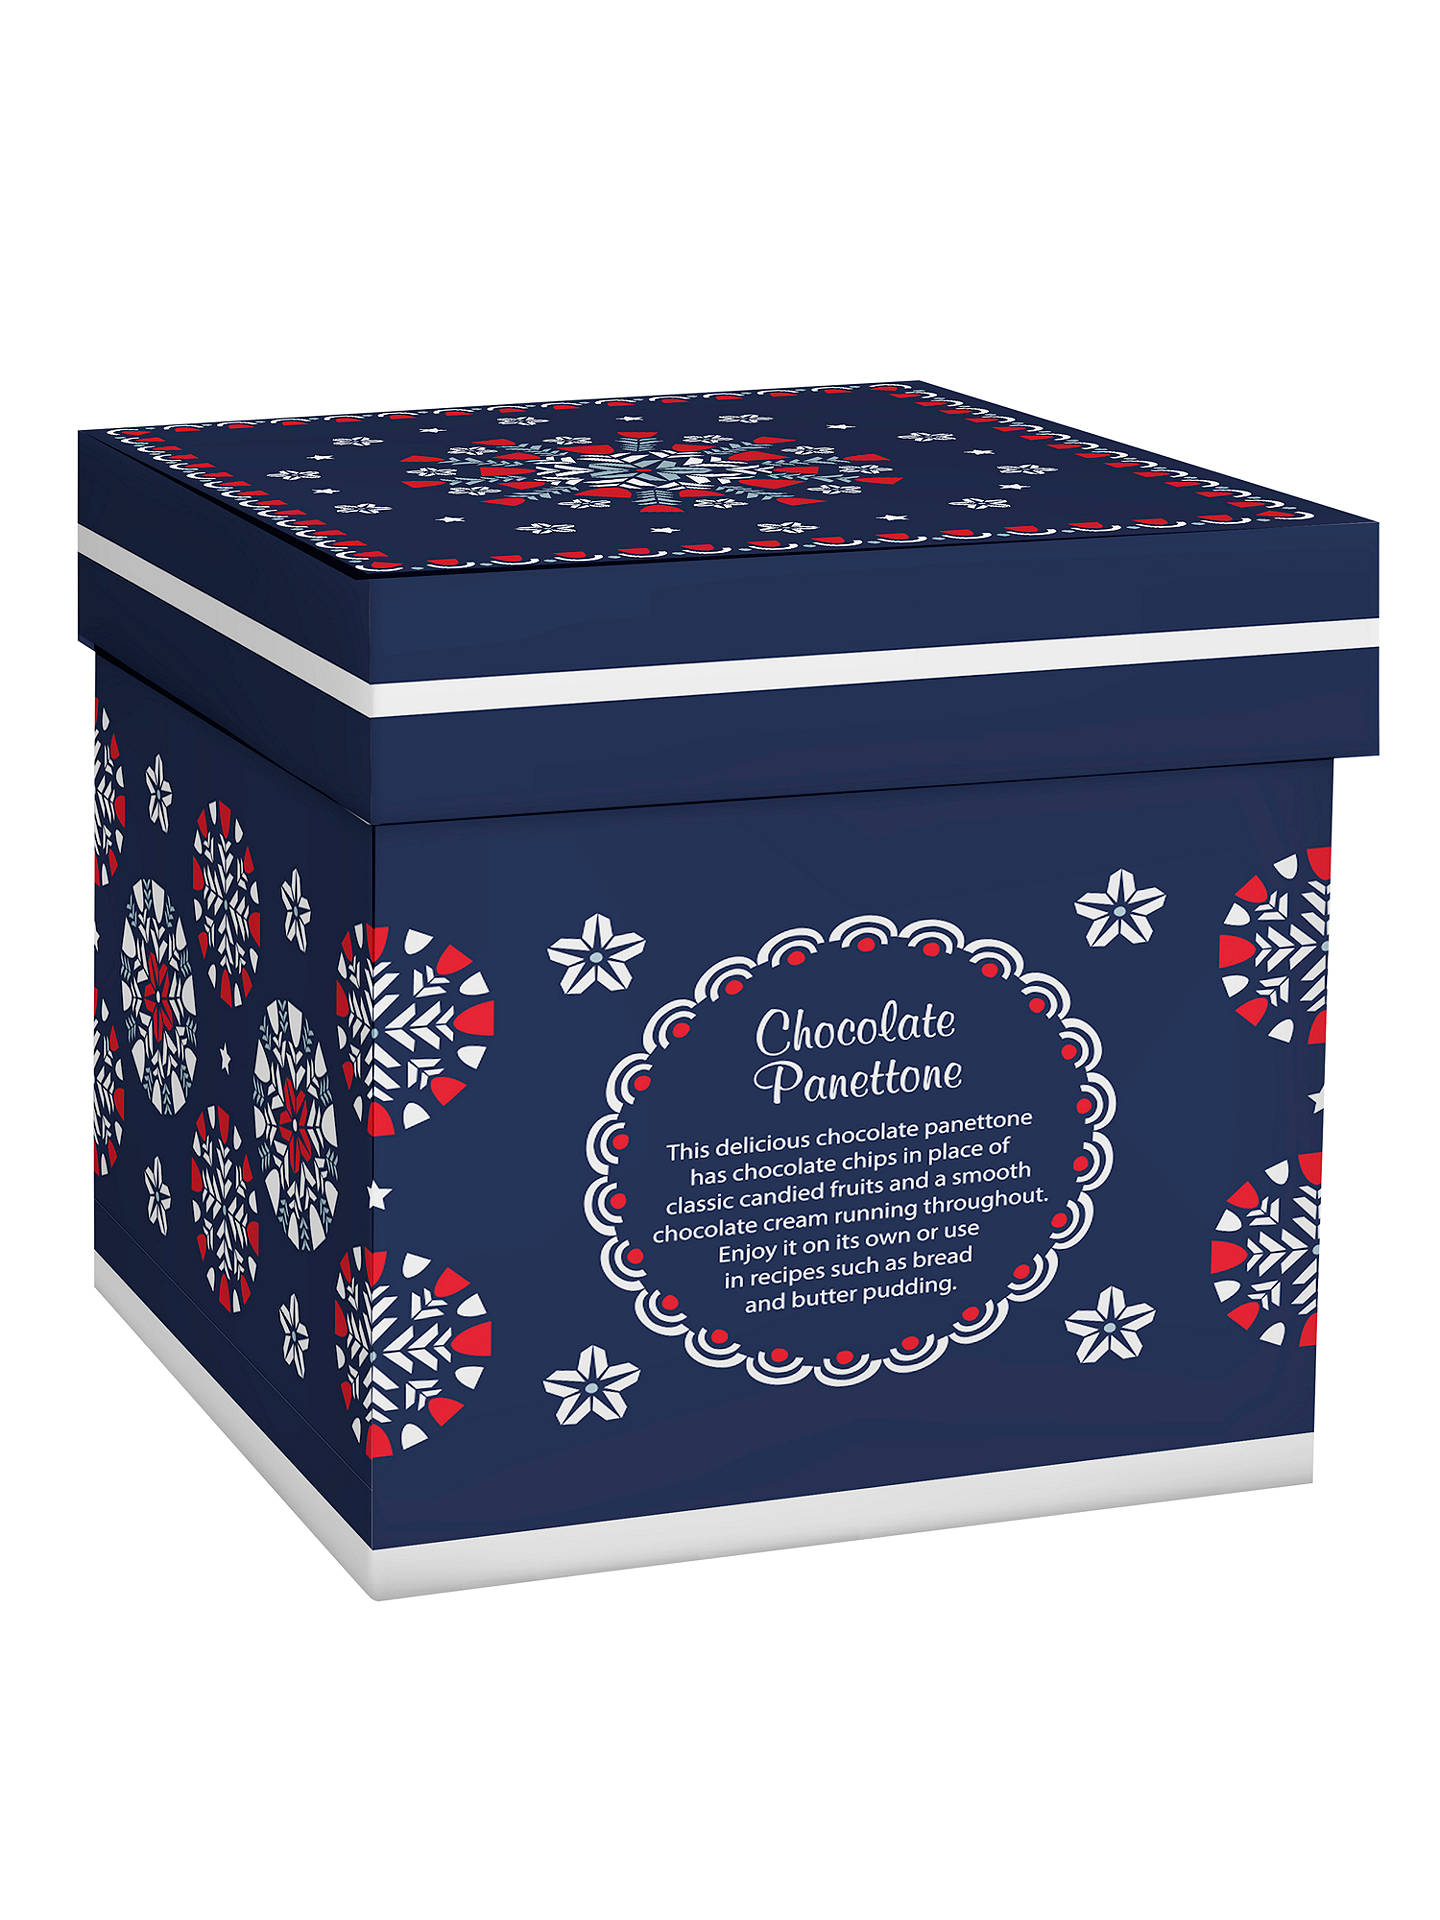 Chocolate Panettone 750g At John Lewis Partners